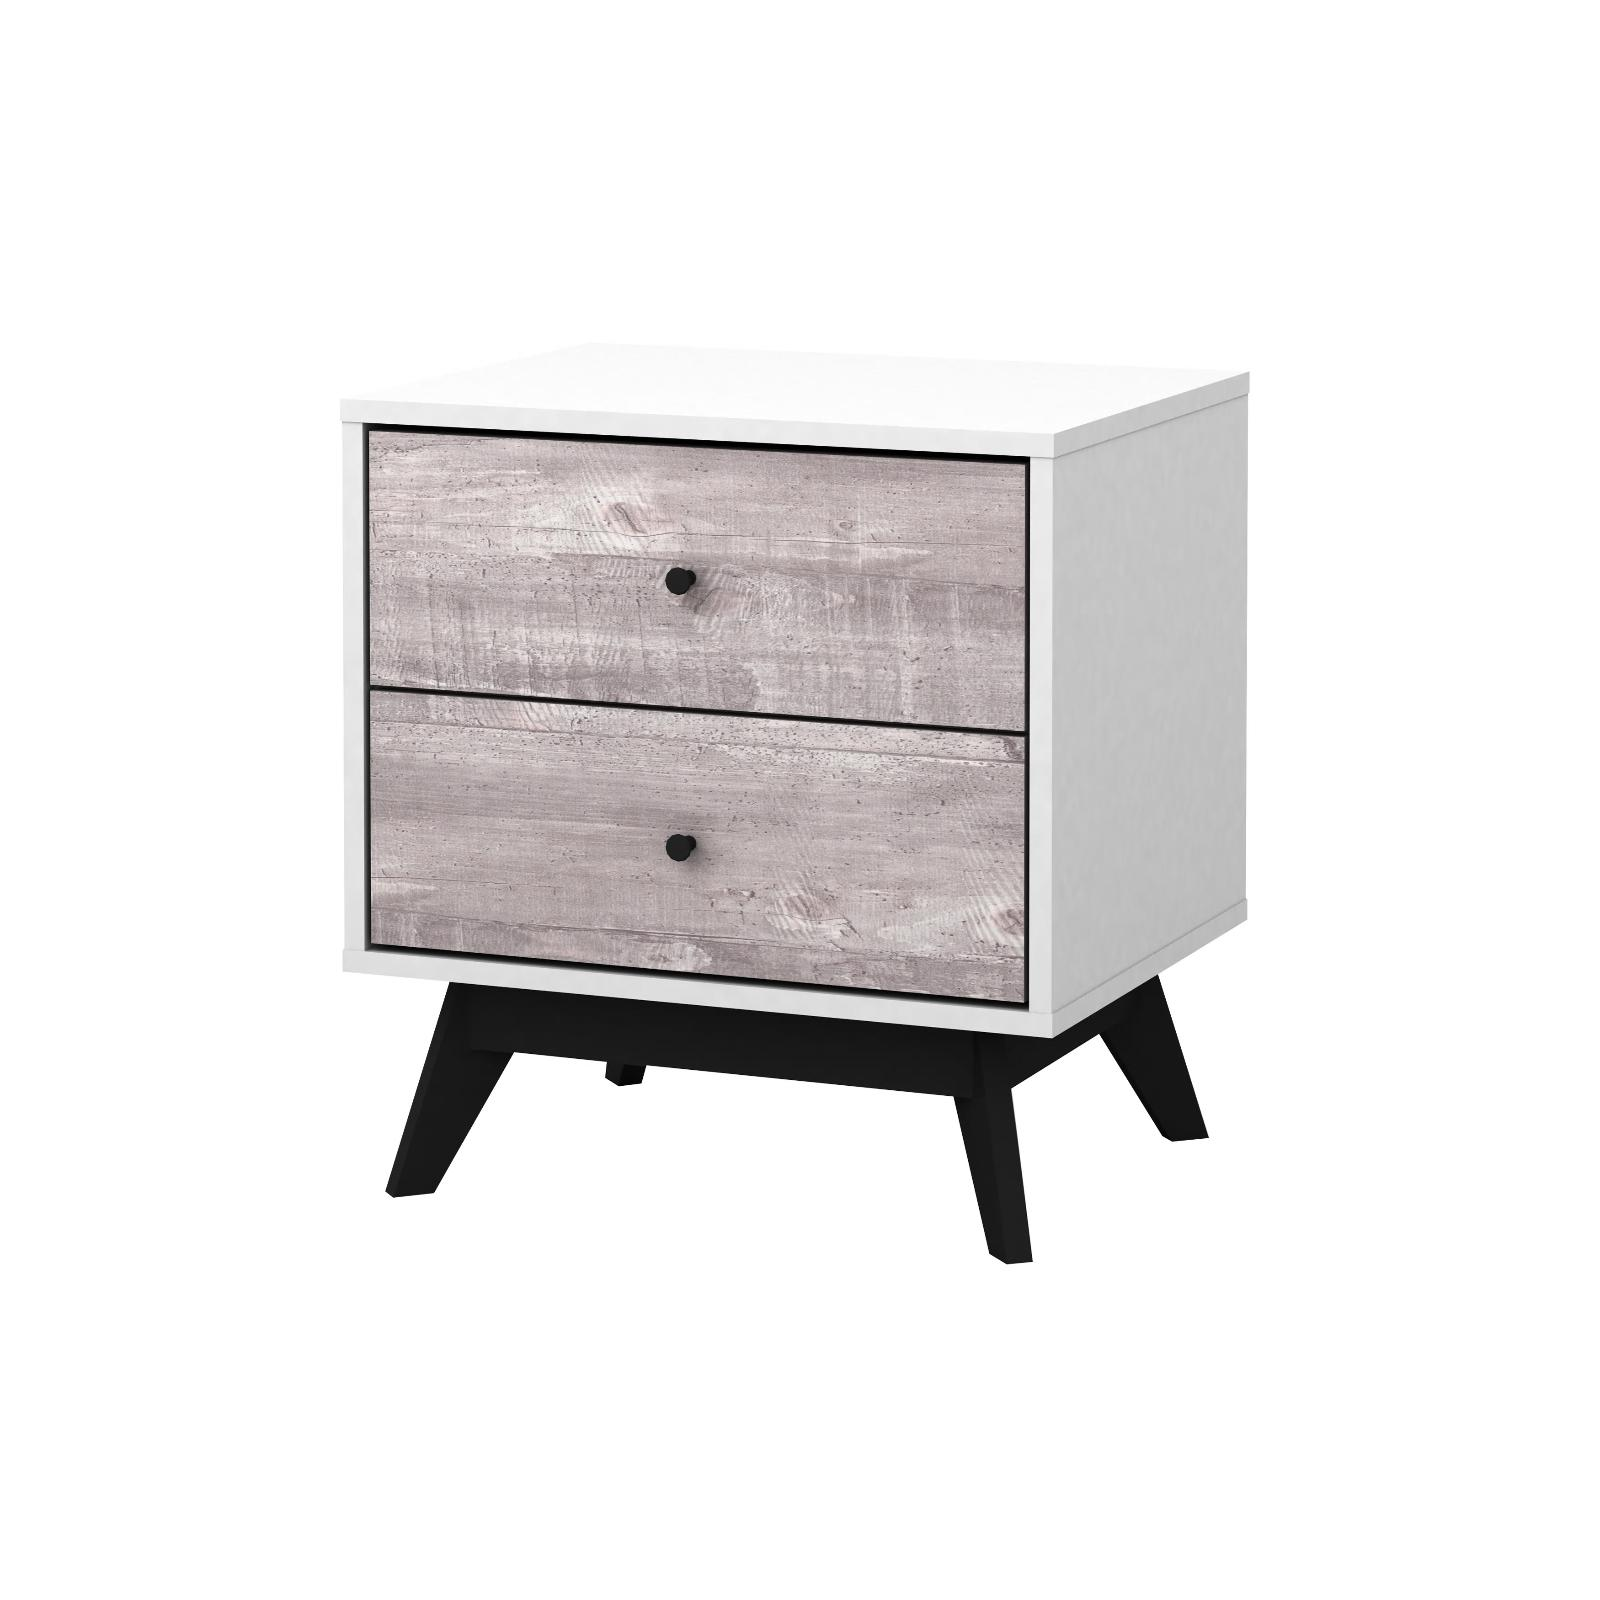 New Simple Living Cassie Mid-Century Night Stand white, gray